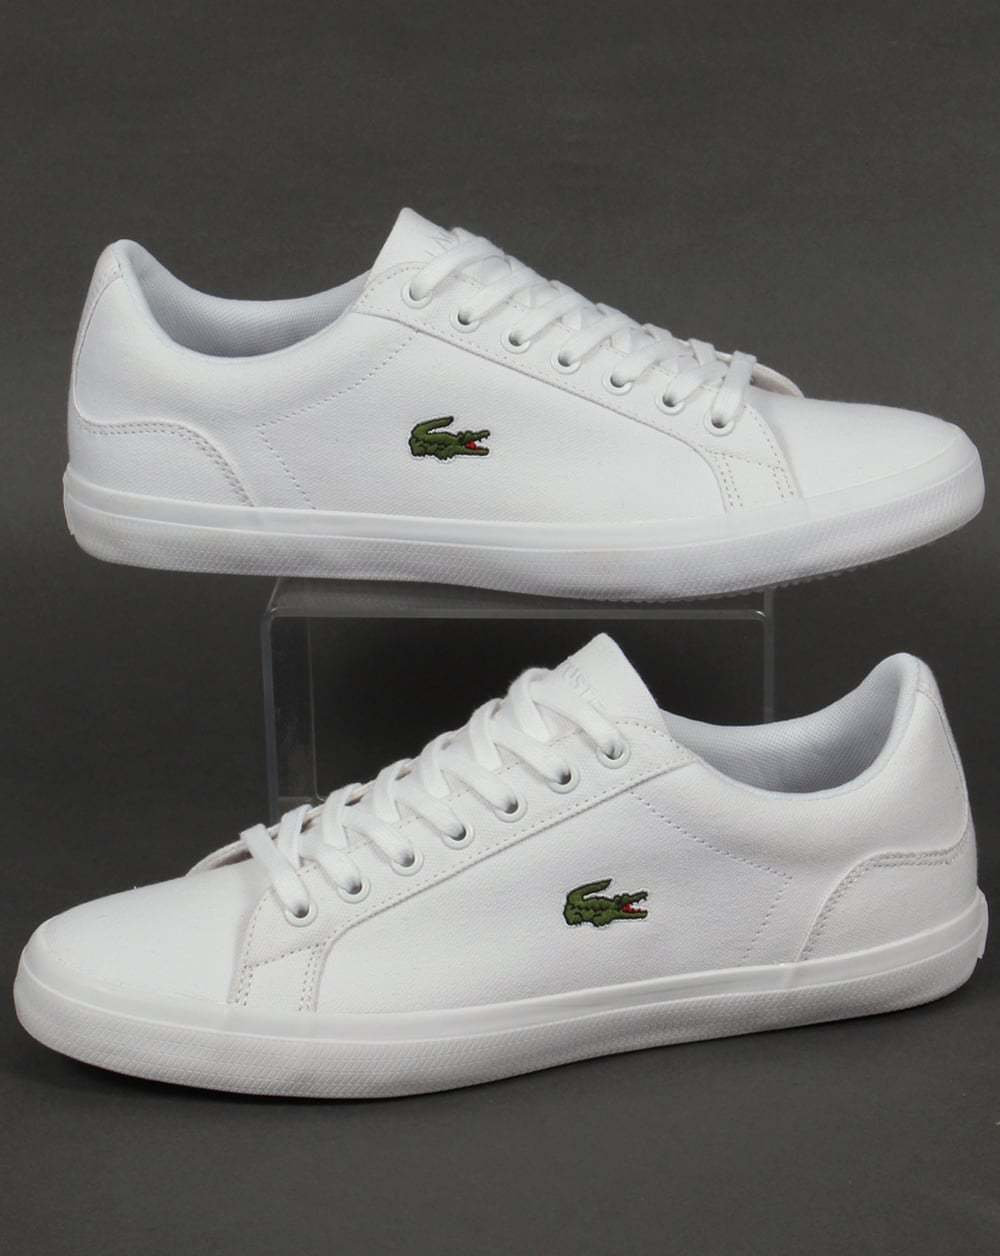 Lacoste Lerond BL Trainers in Weiß - canvas low top Turnschuhe